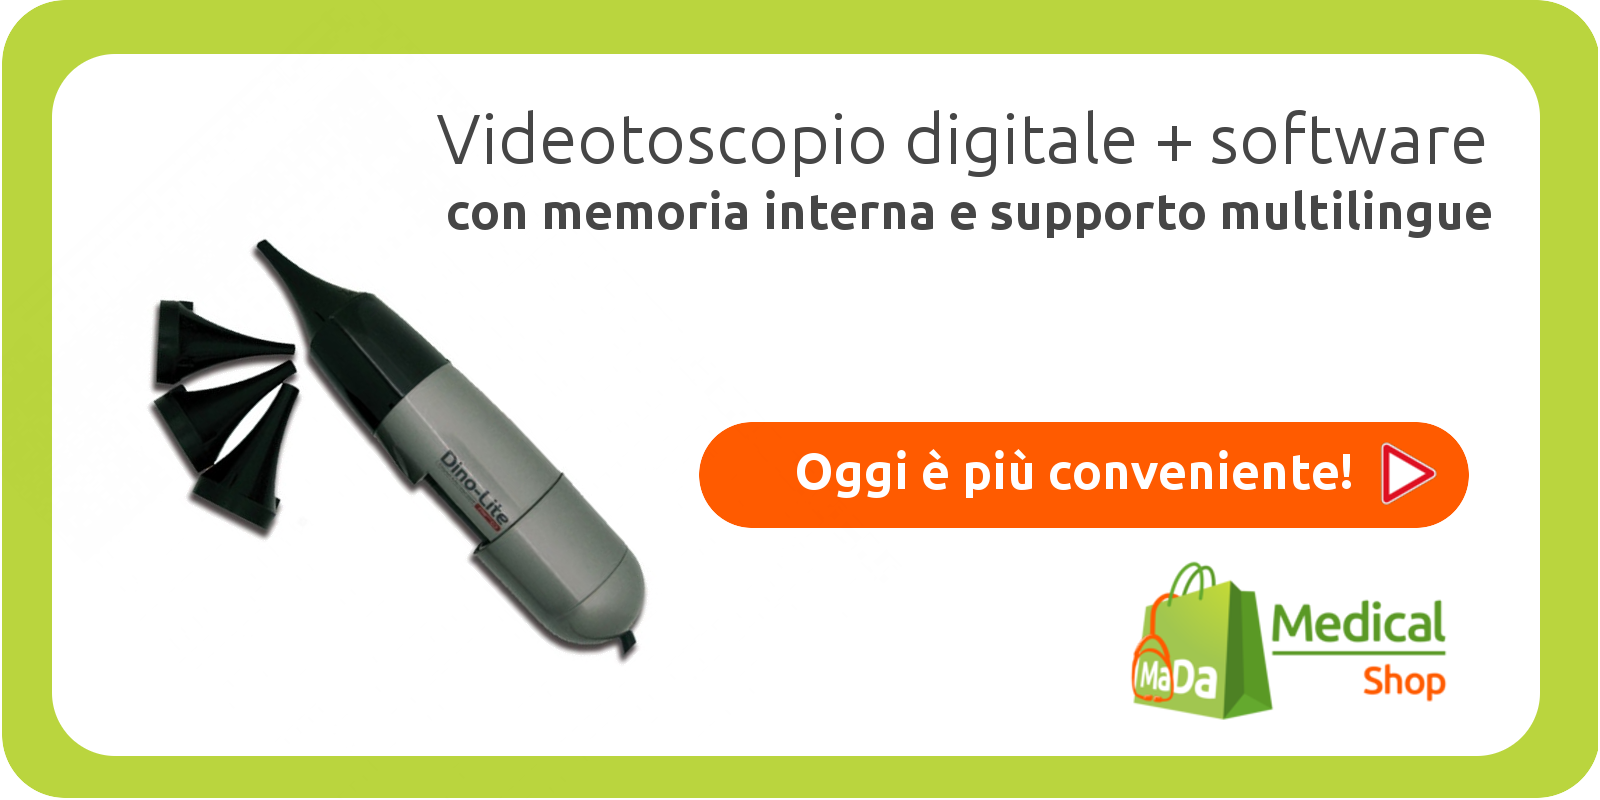 videotoscopio in offerta